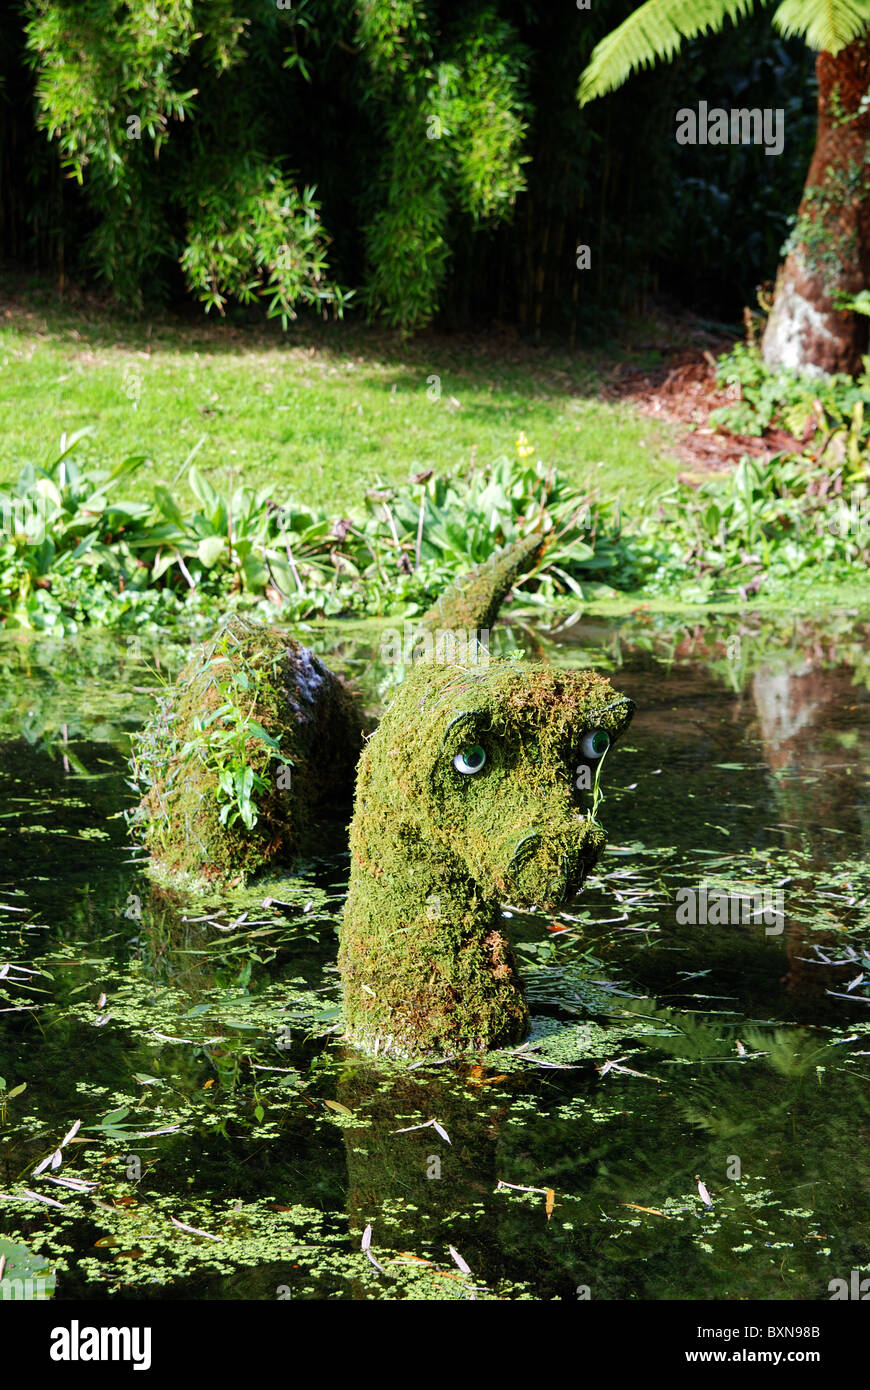 A ' loch ness monster ' water feature at trebah gardens near falmouth in cornwall, uk - Stock Image